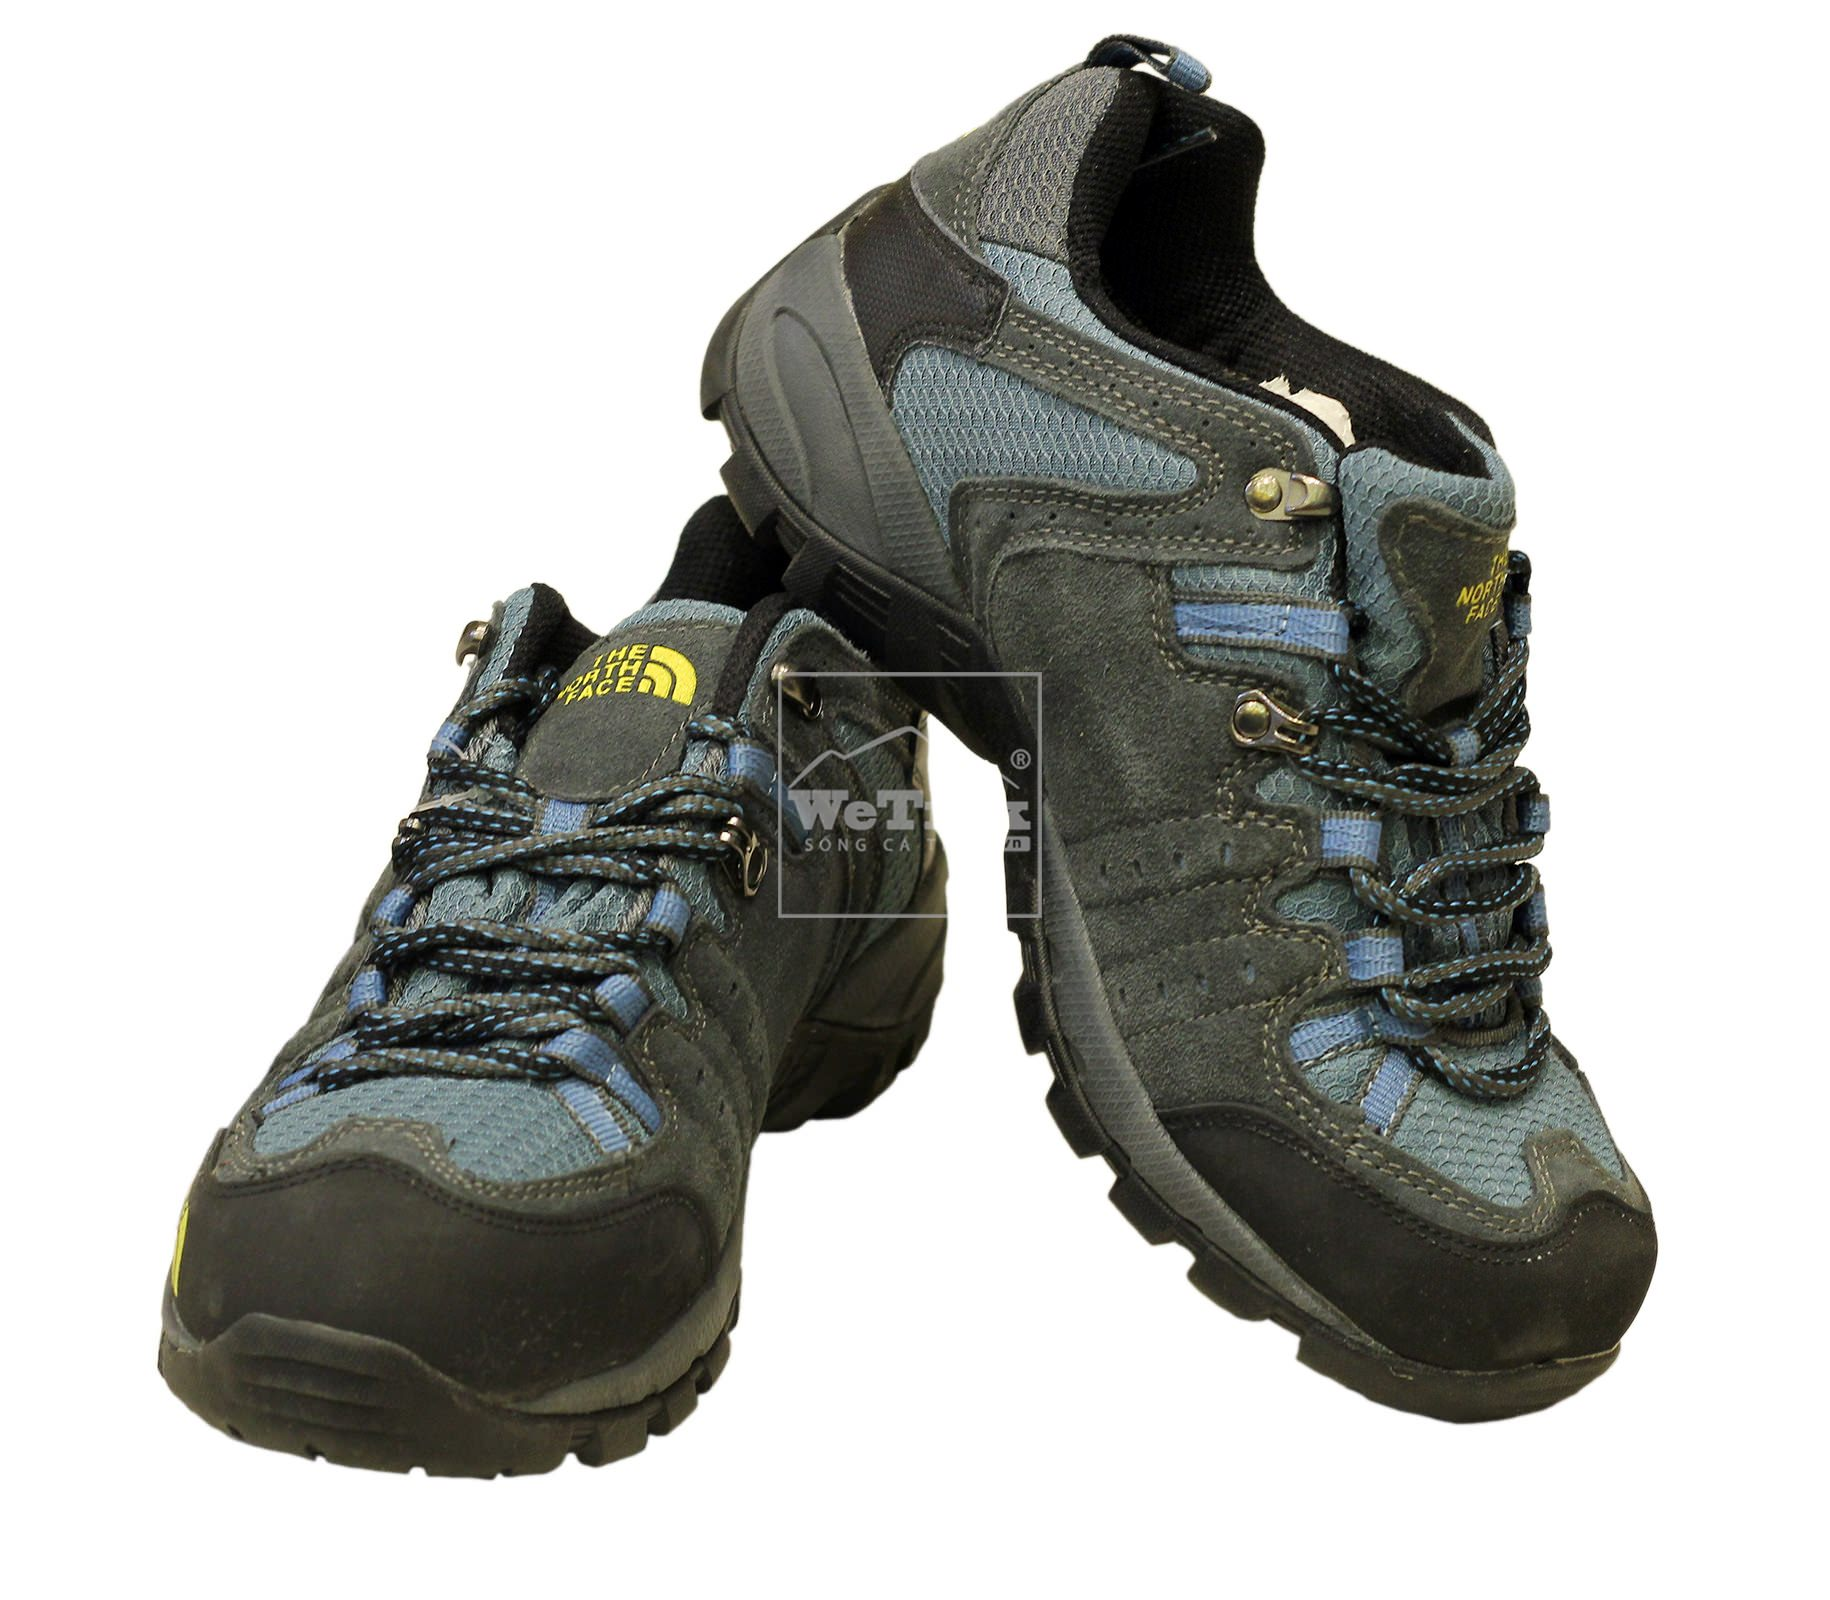 giay-leo-nui-the-north-face-4515-wetrek.vn-3